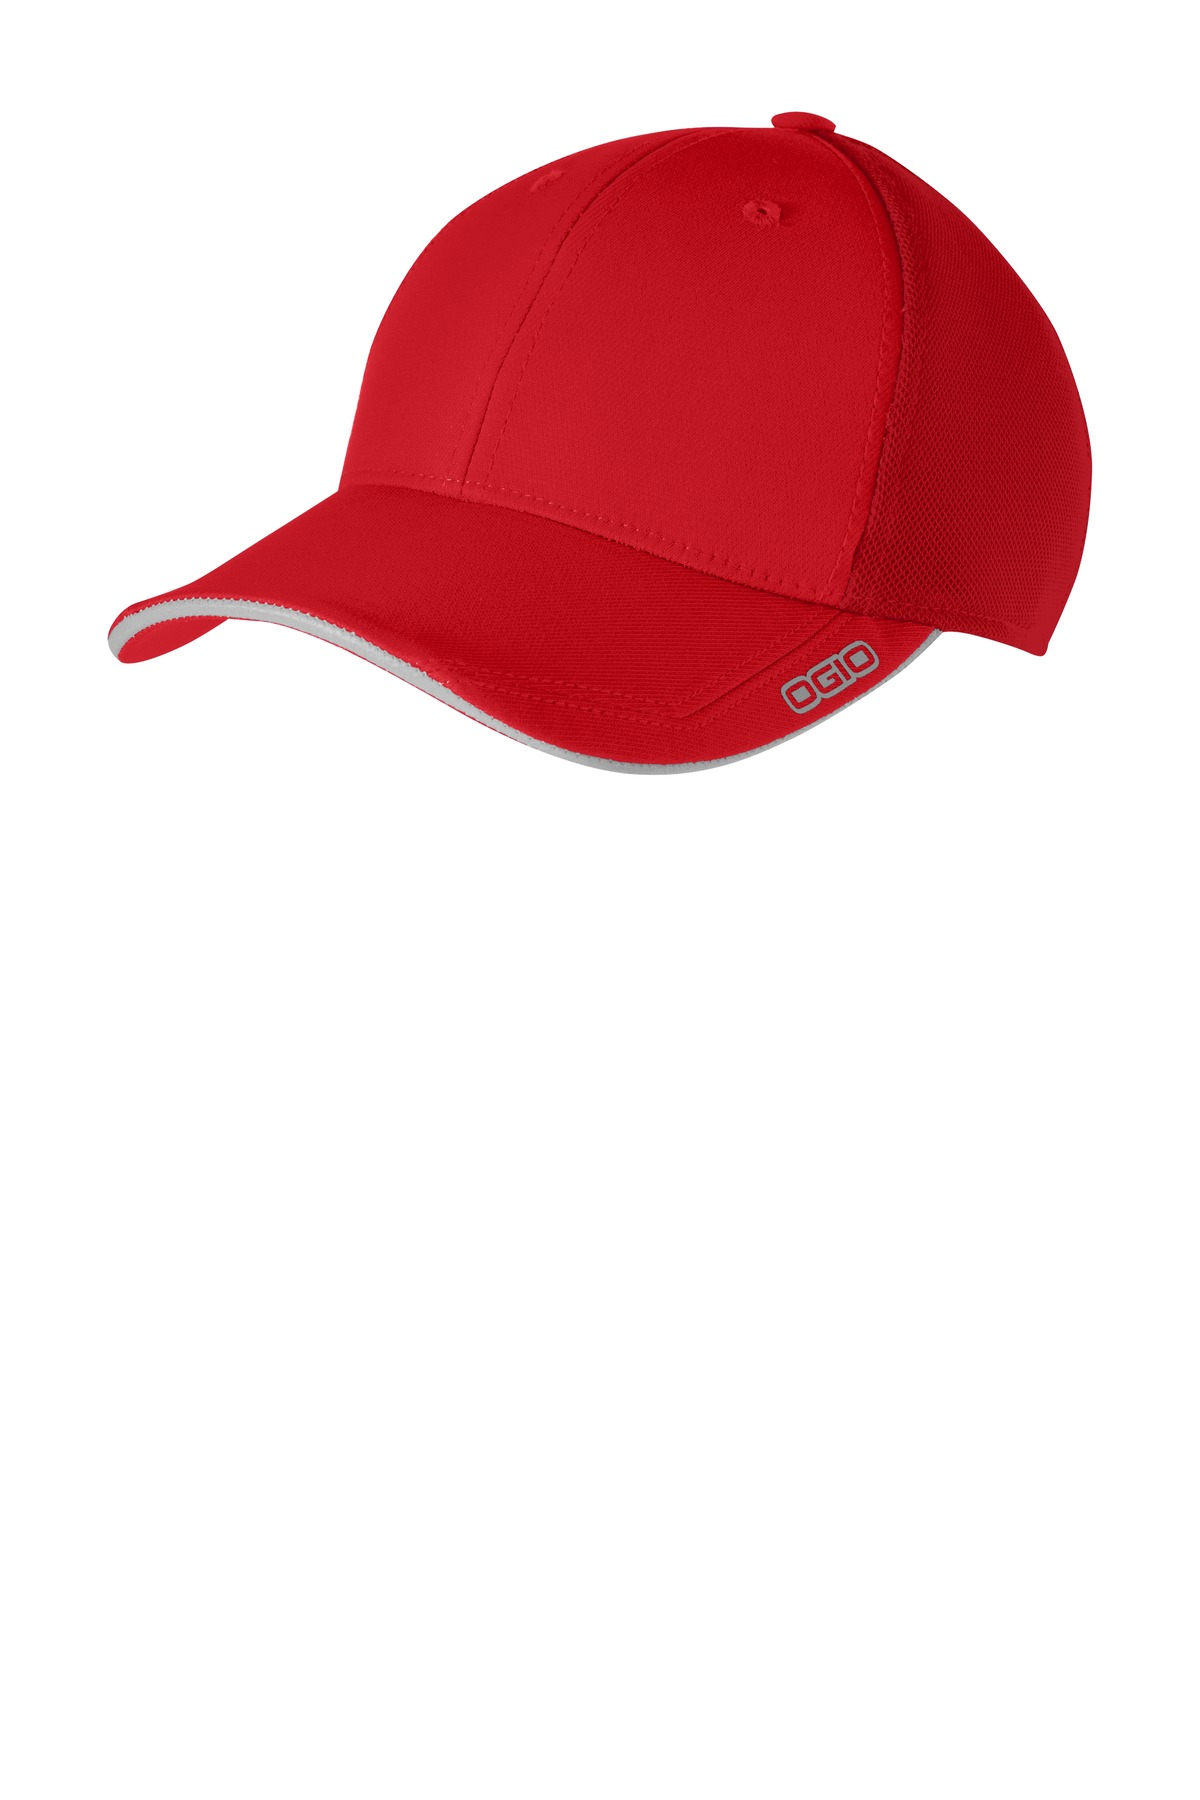 OGIO ®  ENDURANCE Circuit Cap. OE654 - Ripped Red